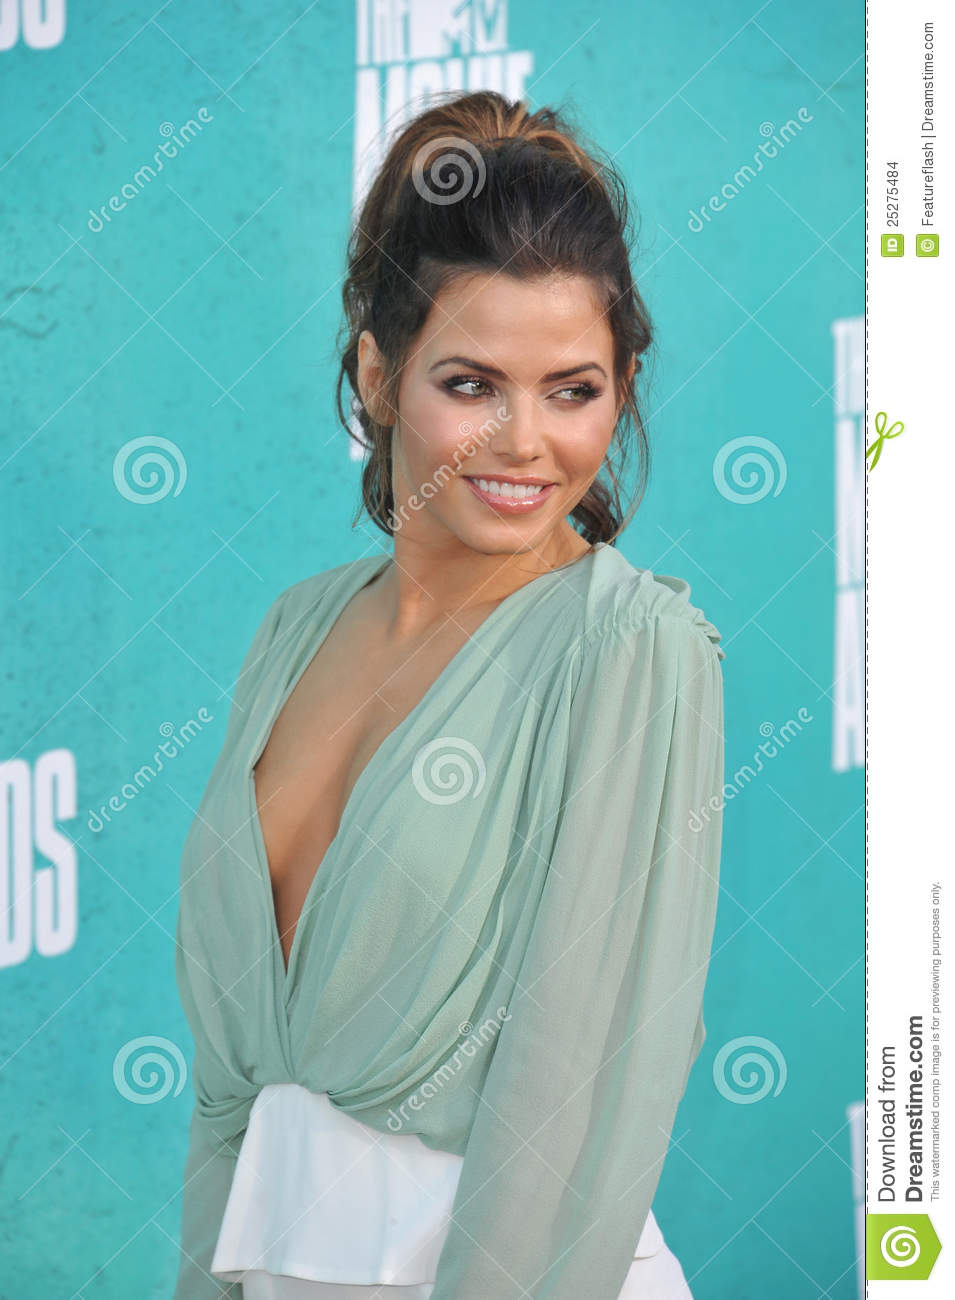 jenna dewan tatum dancejenna dewan tatum wiki, jenna dewan tatum dance, jenna dewan tatum channing tatum, jenna dewan tatum style, jenna dewan tatum fan, jenna dewan tatum instagram, jenna dewan tatum foto, jenna dewan tatum lip sync battle, jenna dewan tatum daughter, jenna dewan tatum fansite, jenna dewan tatum pony